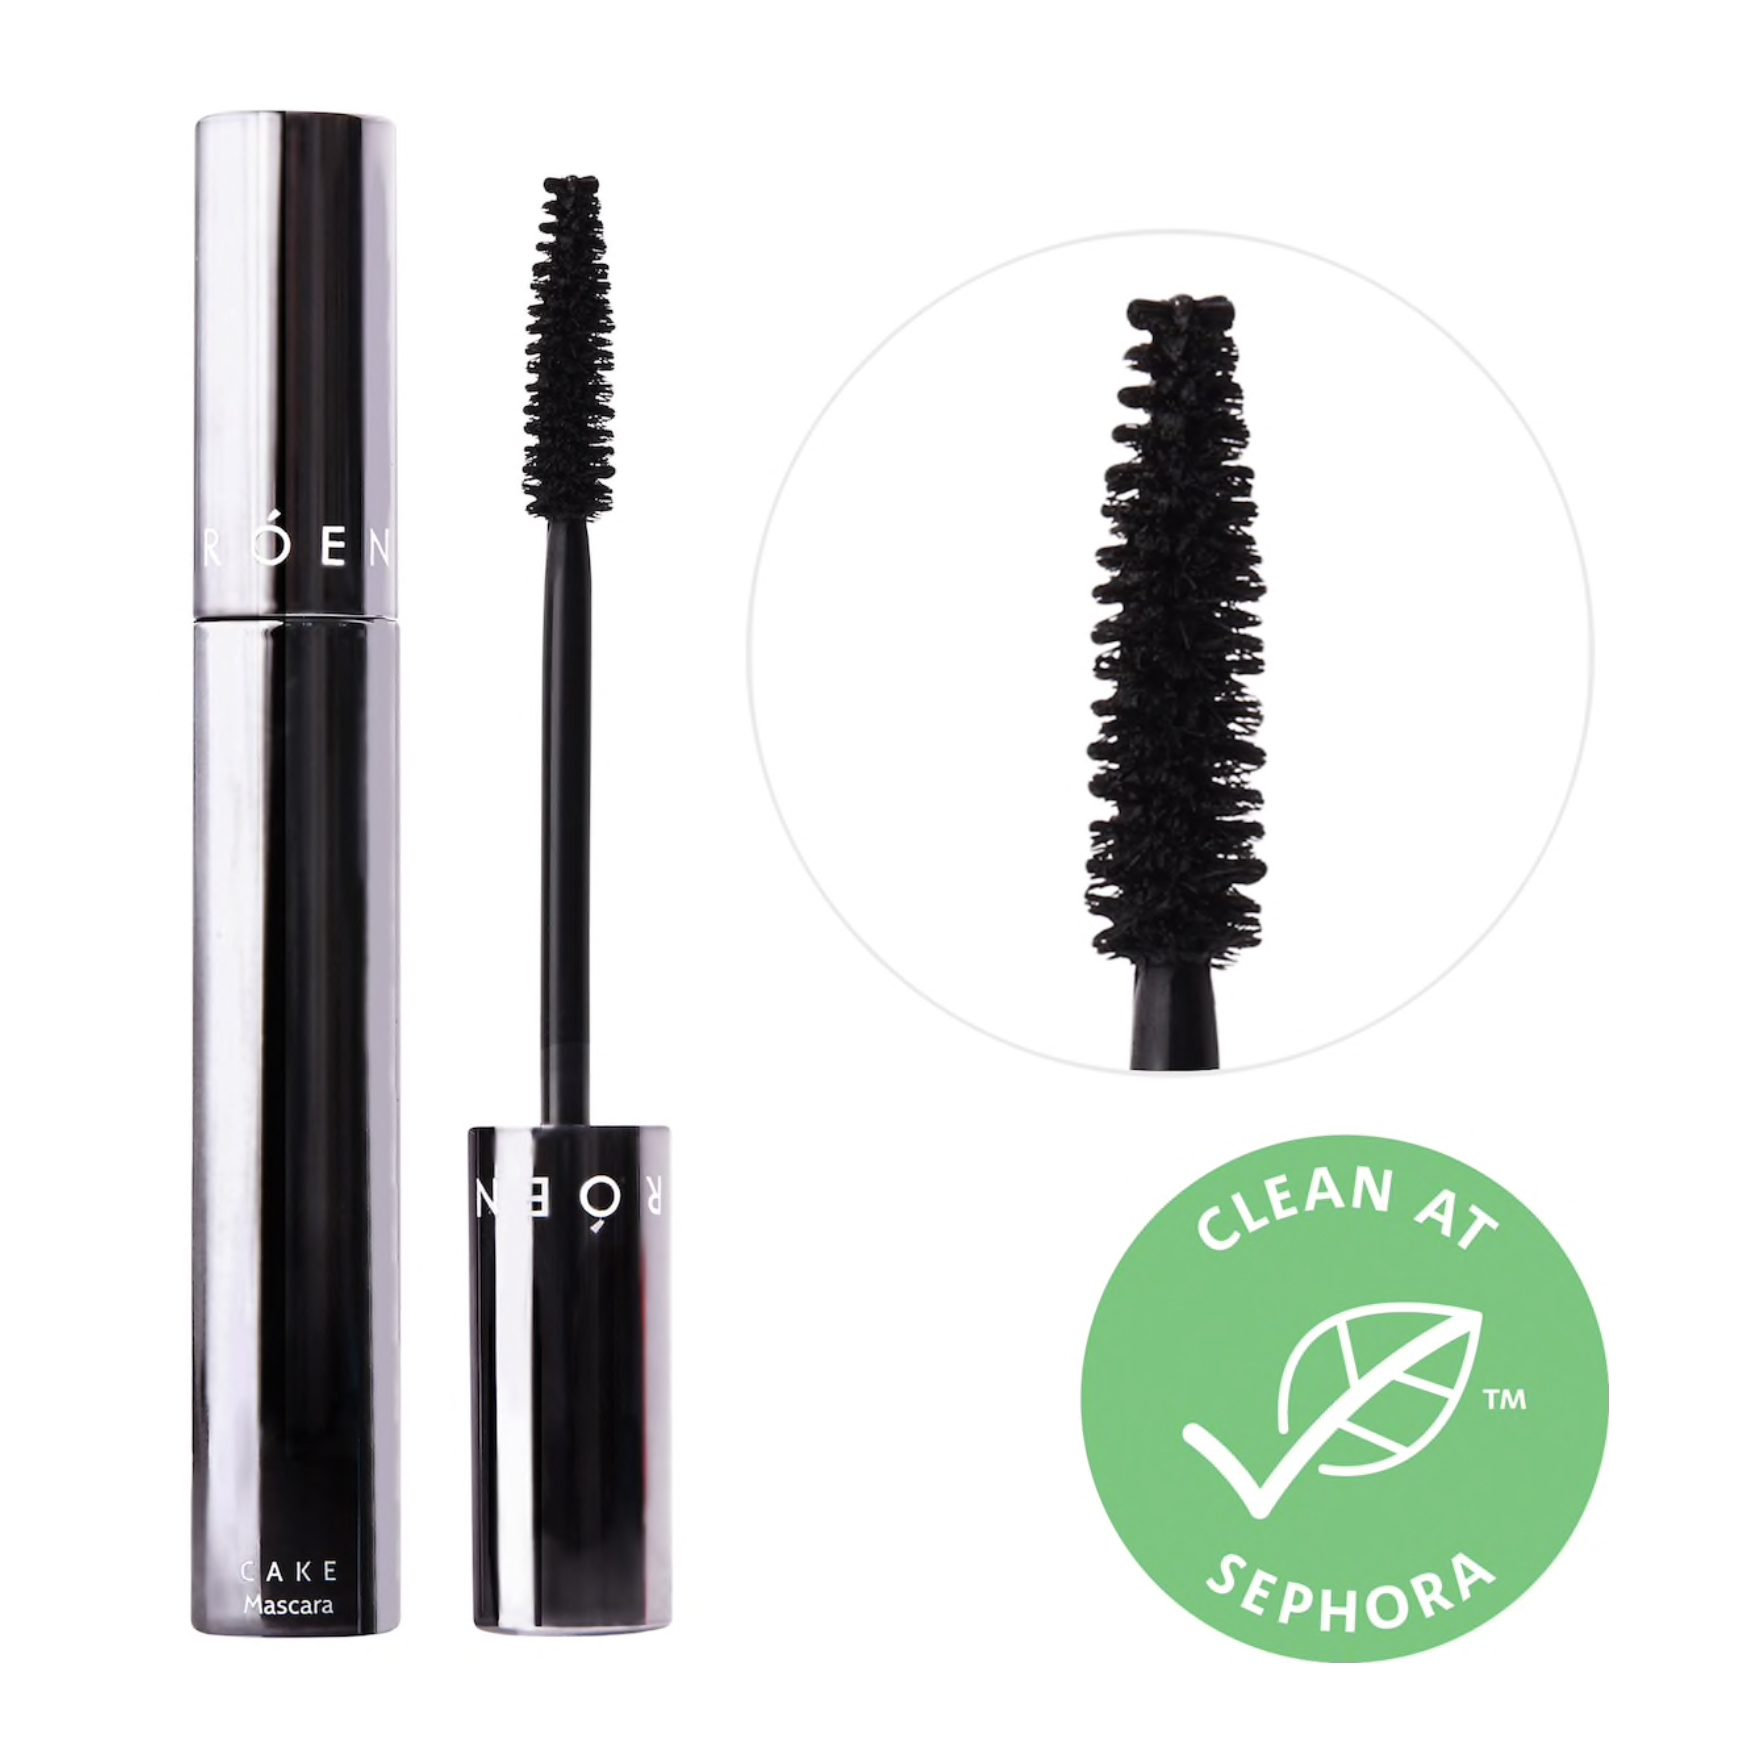 Roen Beauty Cake Mascara